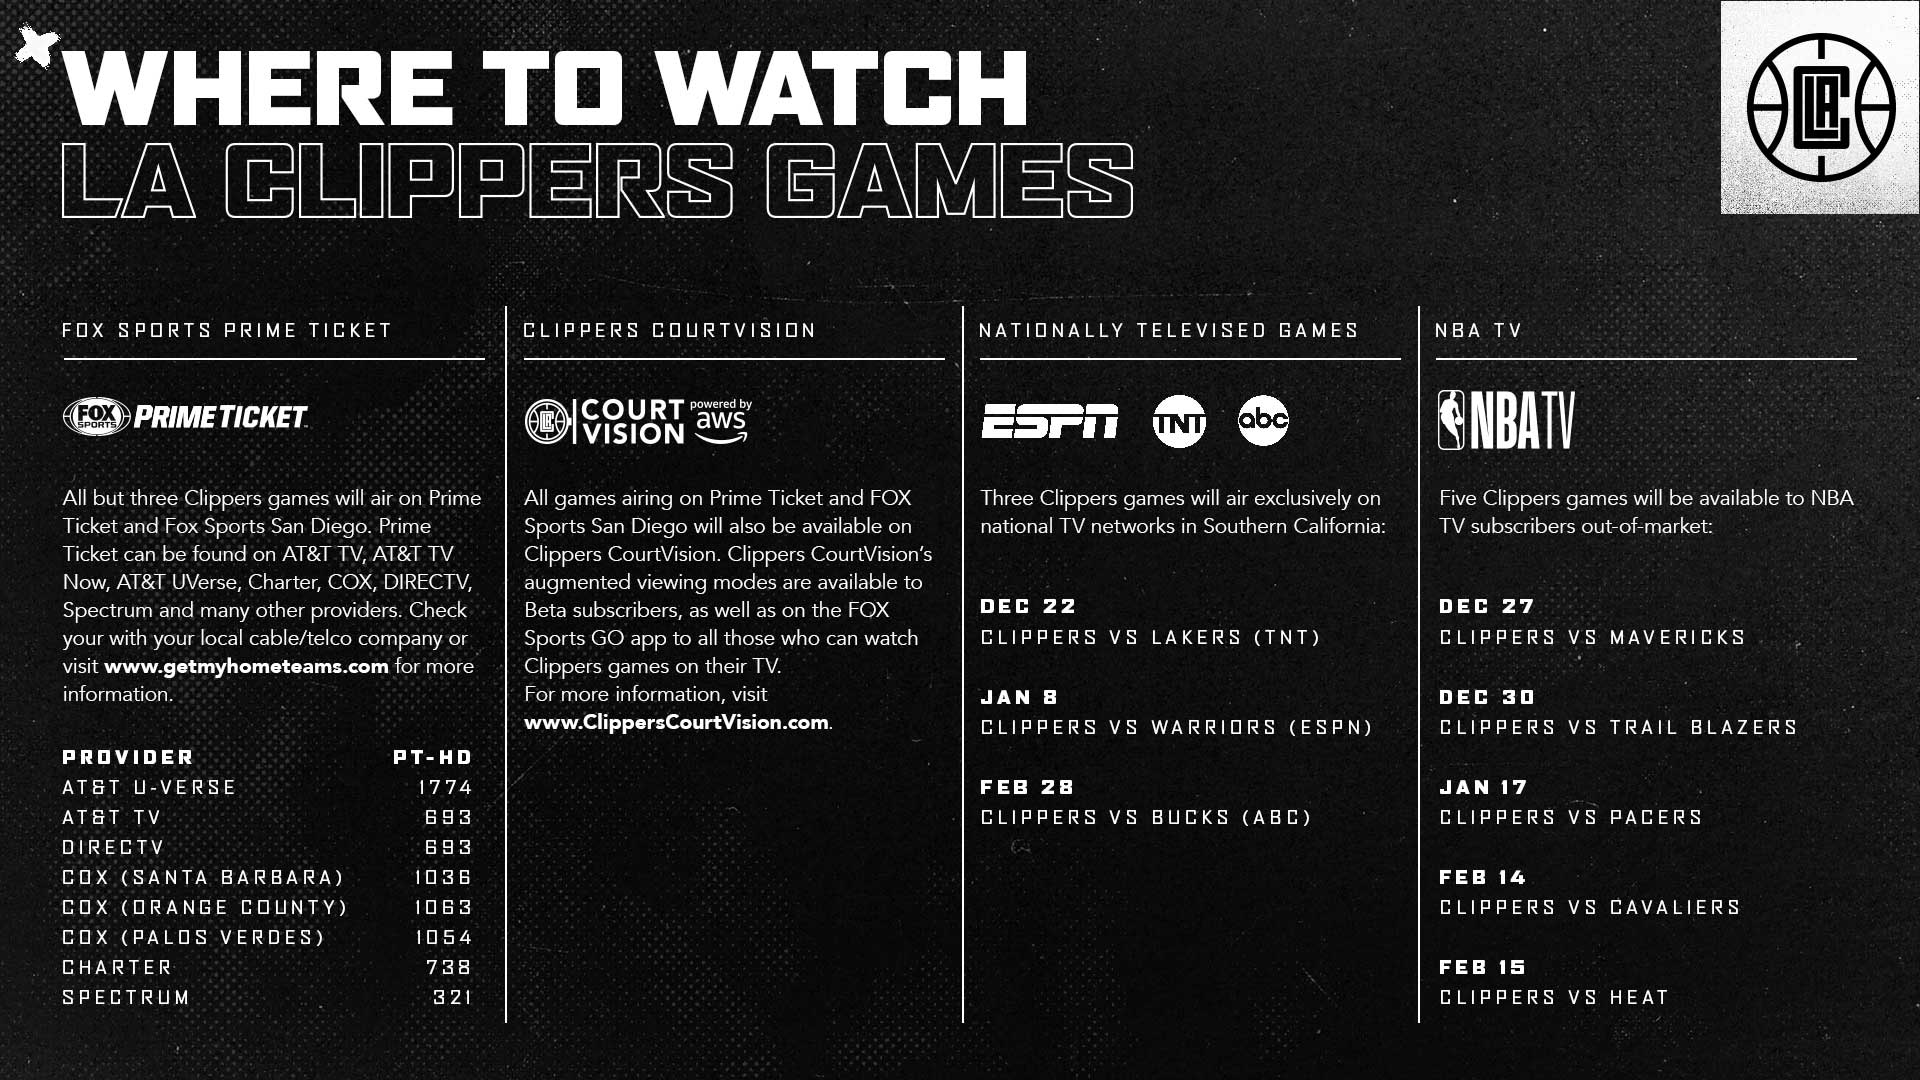 Where To Watch LA Clippers Games